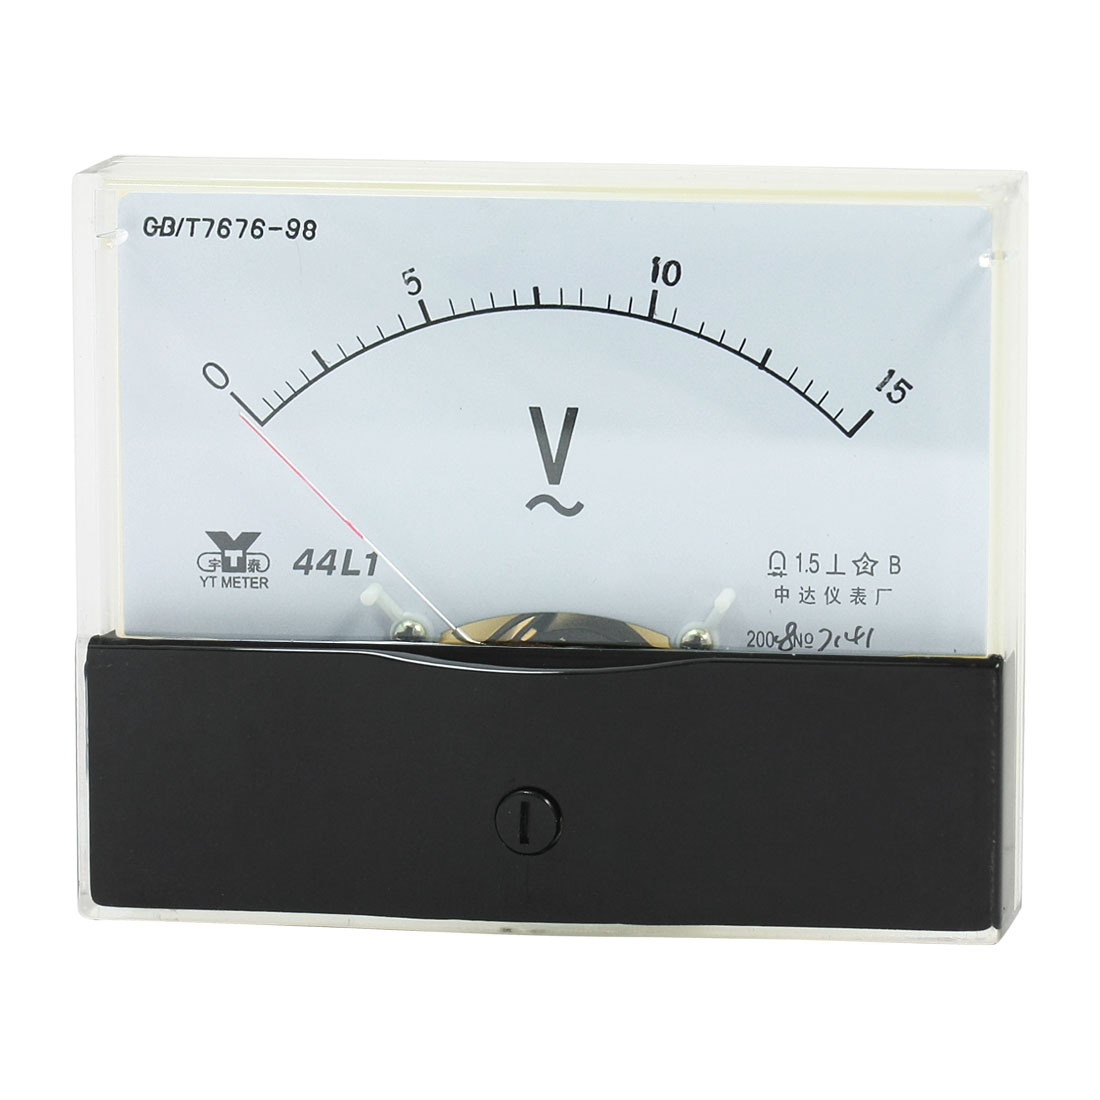 Rectangle Measurement Tool Analog Panel Voltmeter Volt Meter AC 0 - 15V Measuring Range 44L1